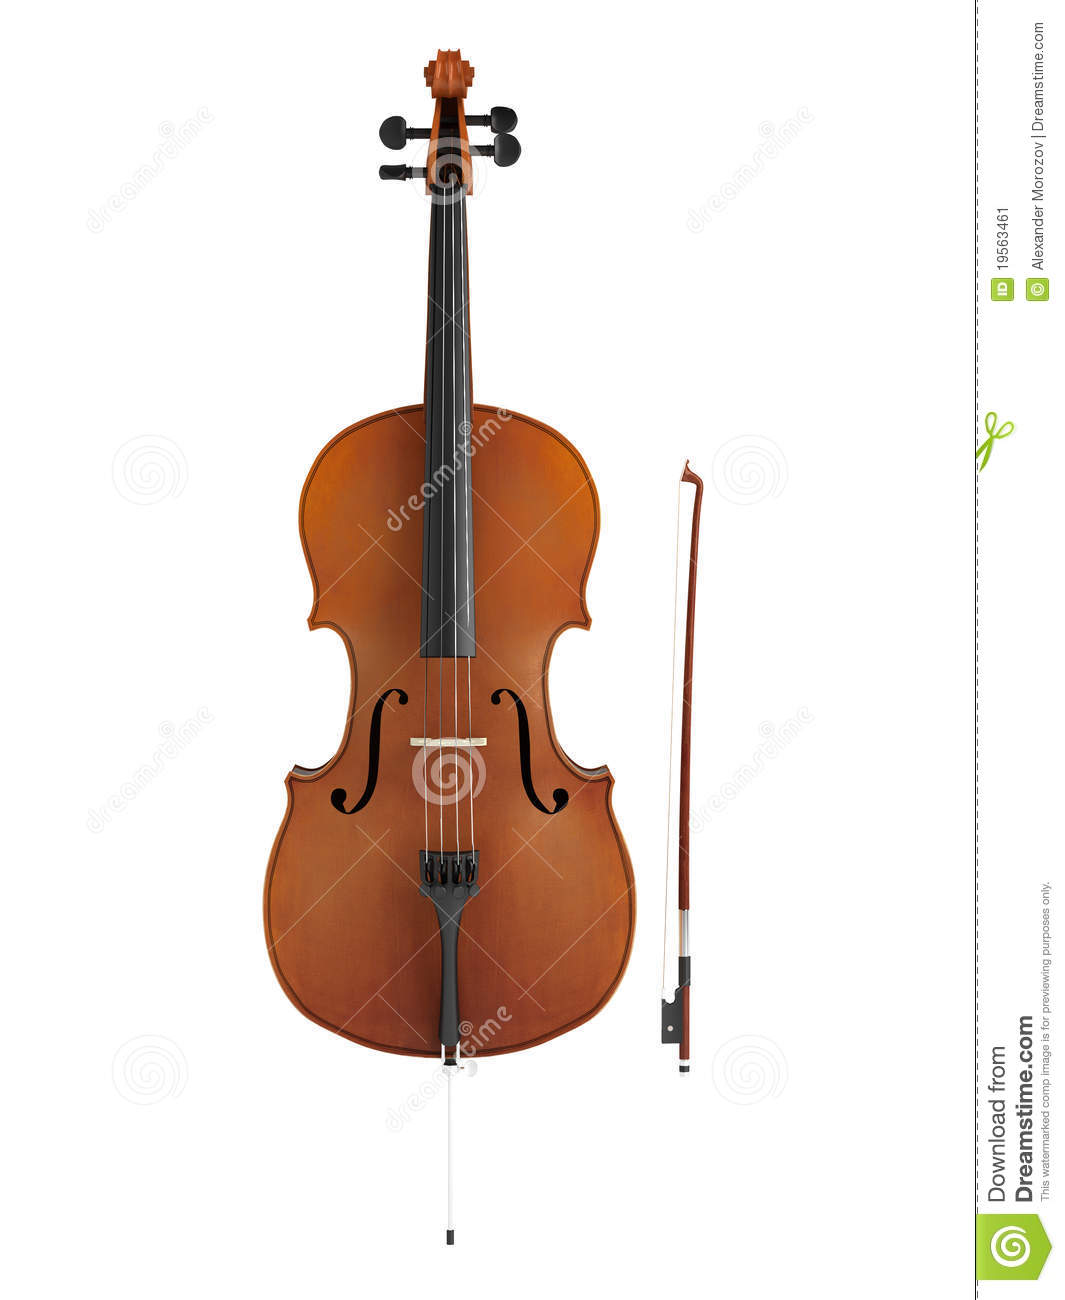 Cello Stock Image - Image: 19563461